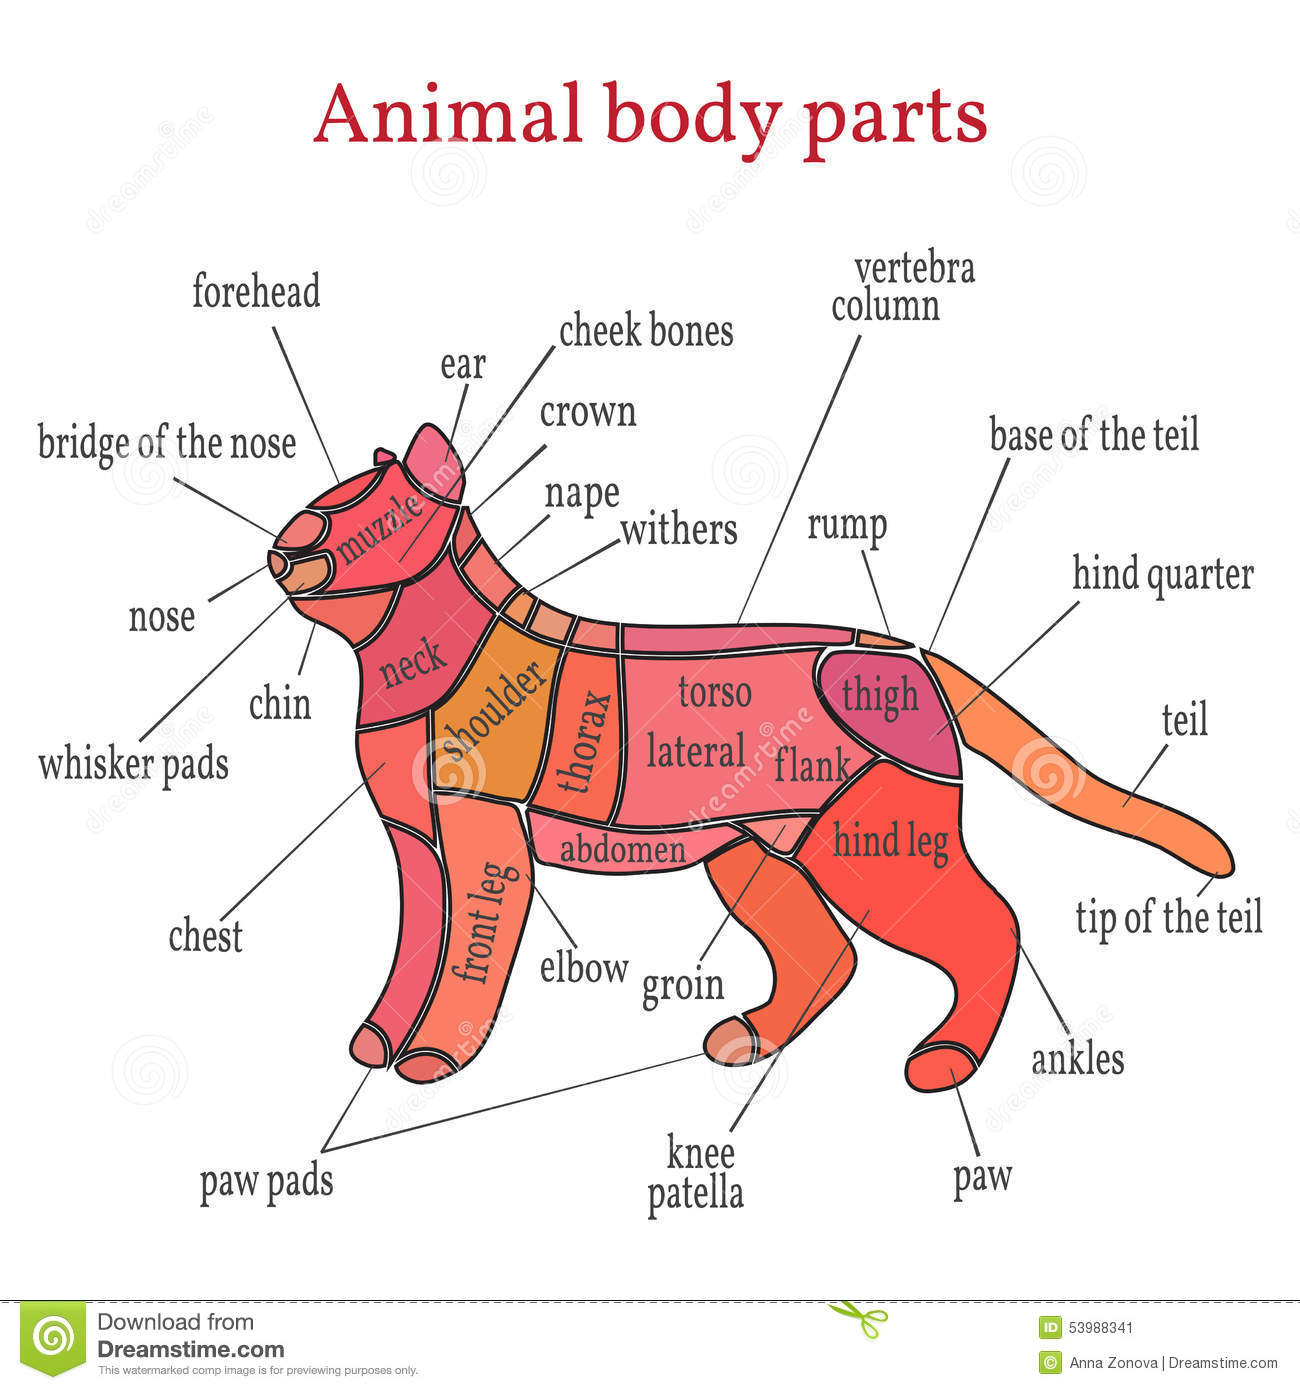 hight resolution of animal body parts stock vector illustration of spine 53988341 cat body parts diagram lion body parts diagram